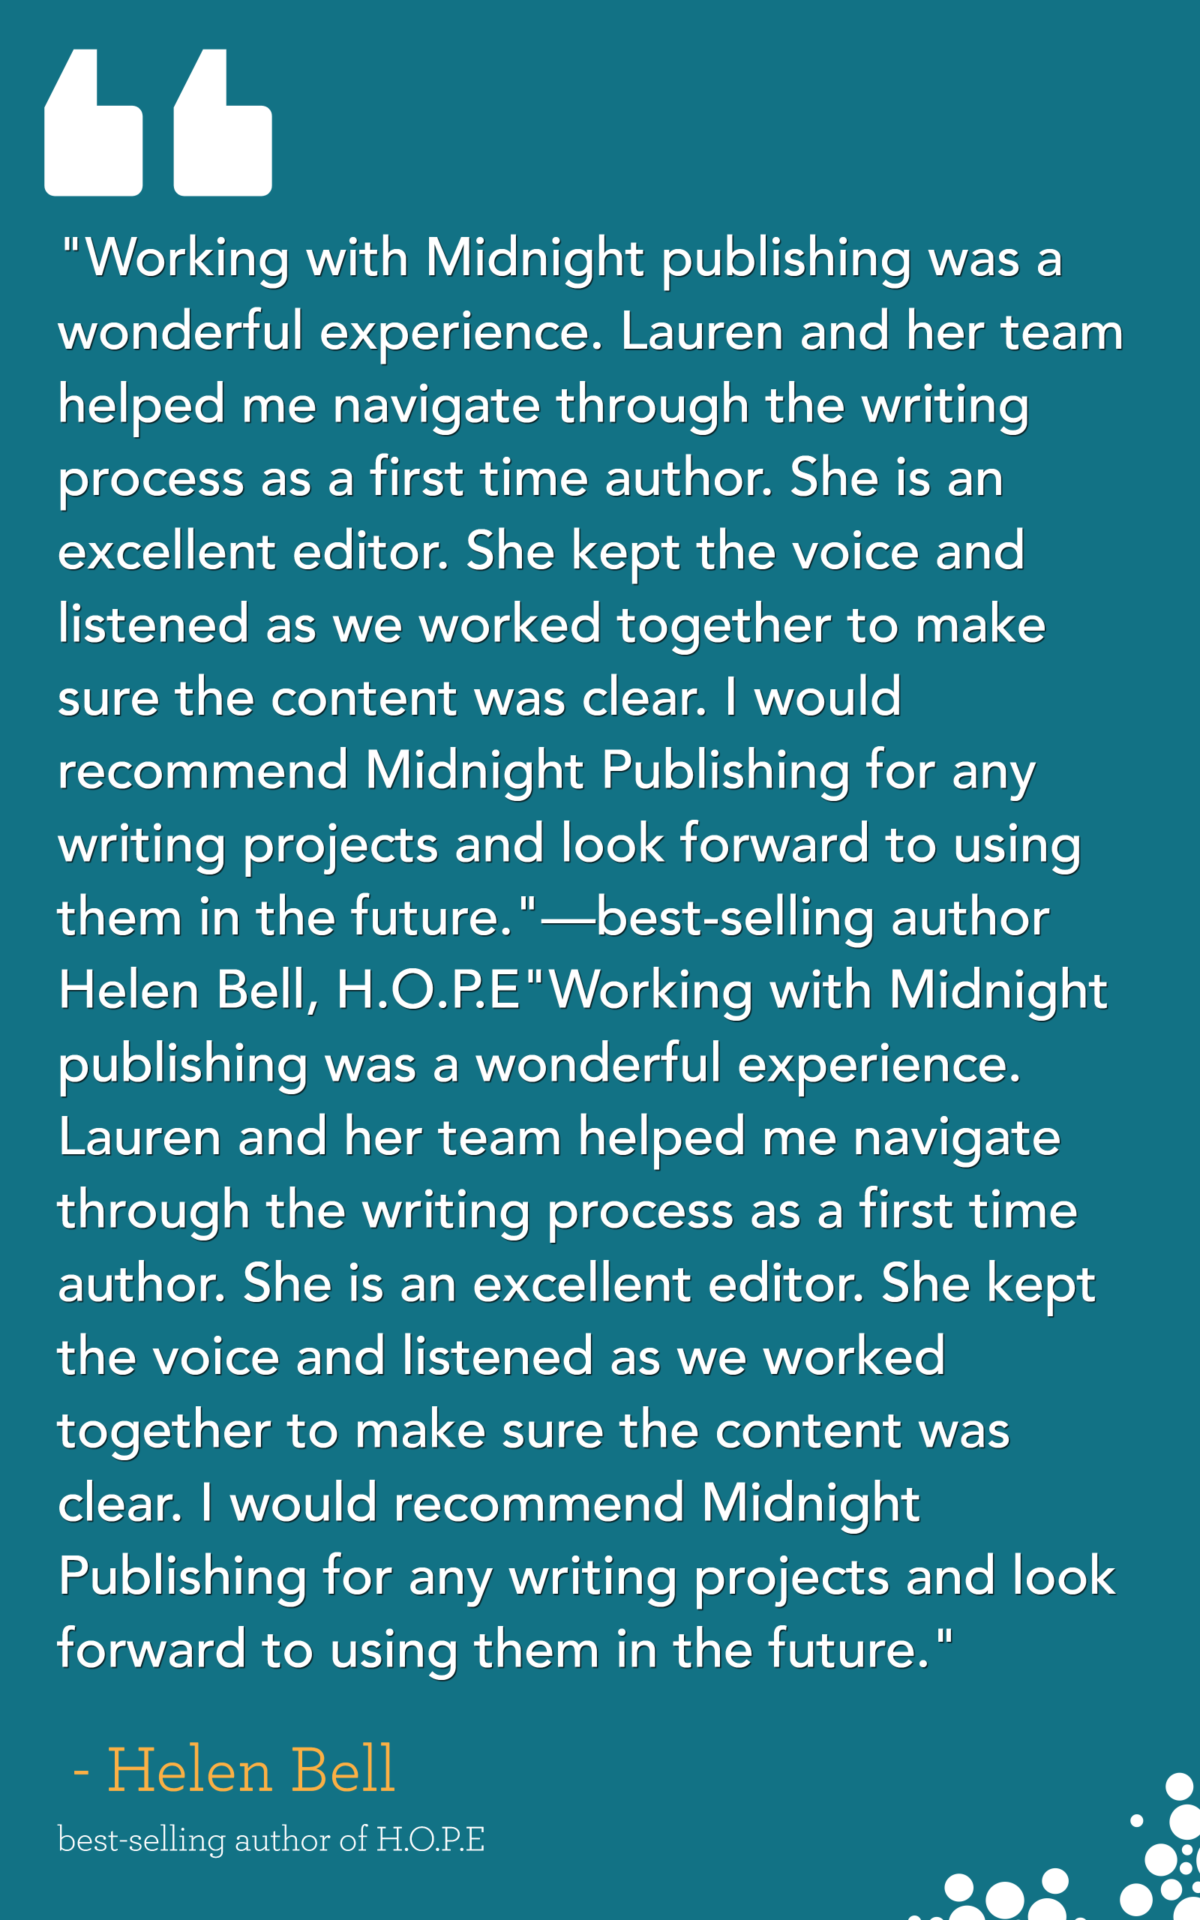 HOPE by Helen Bell - testimonial for midnight publishing